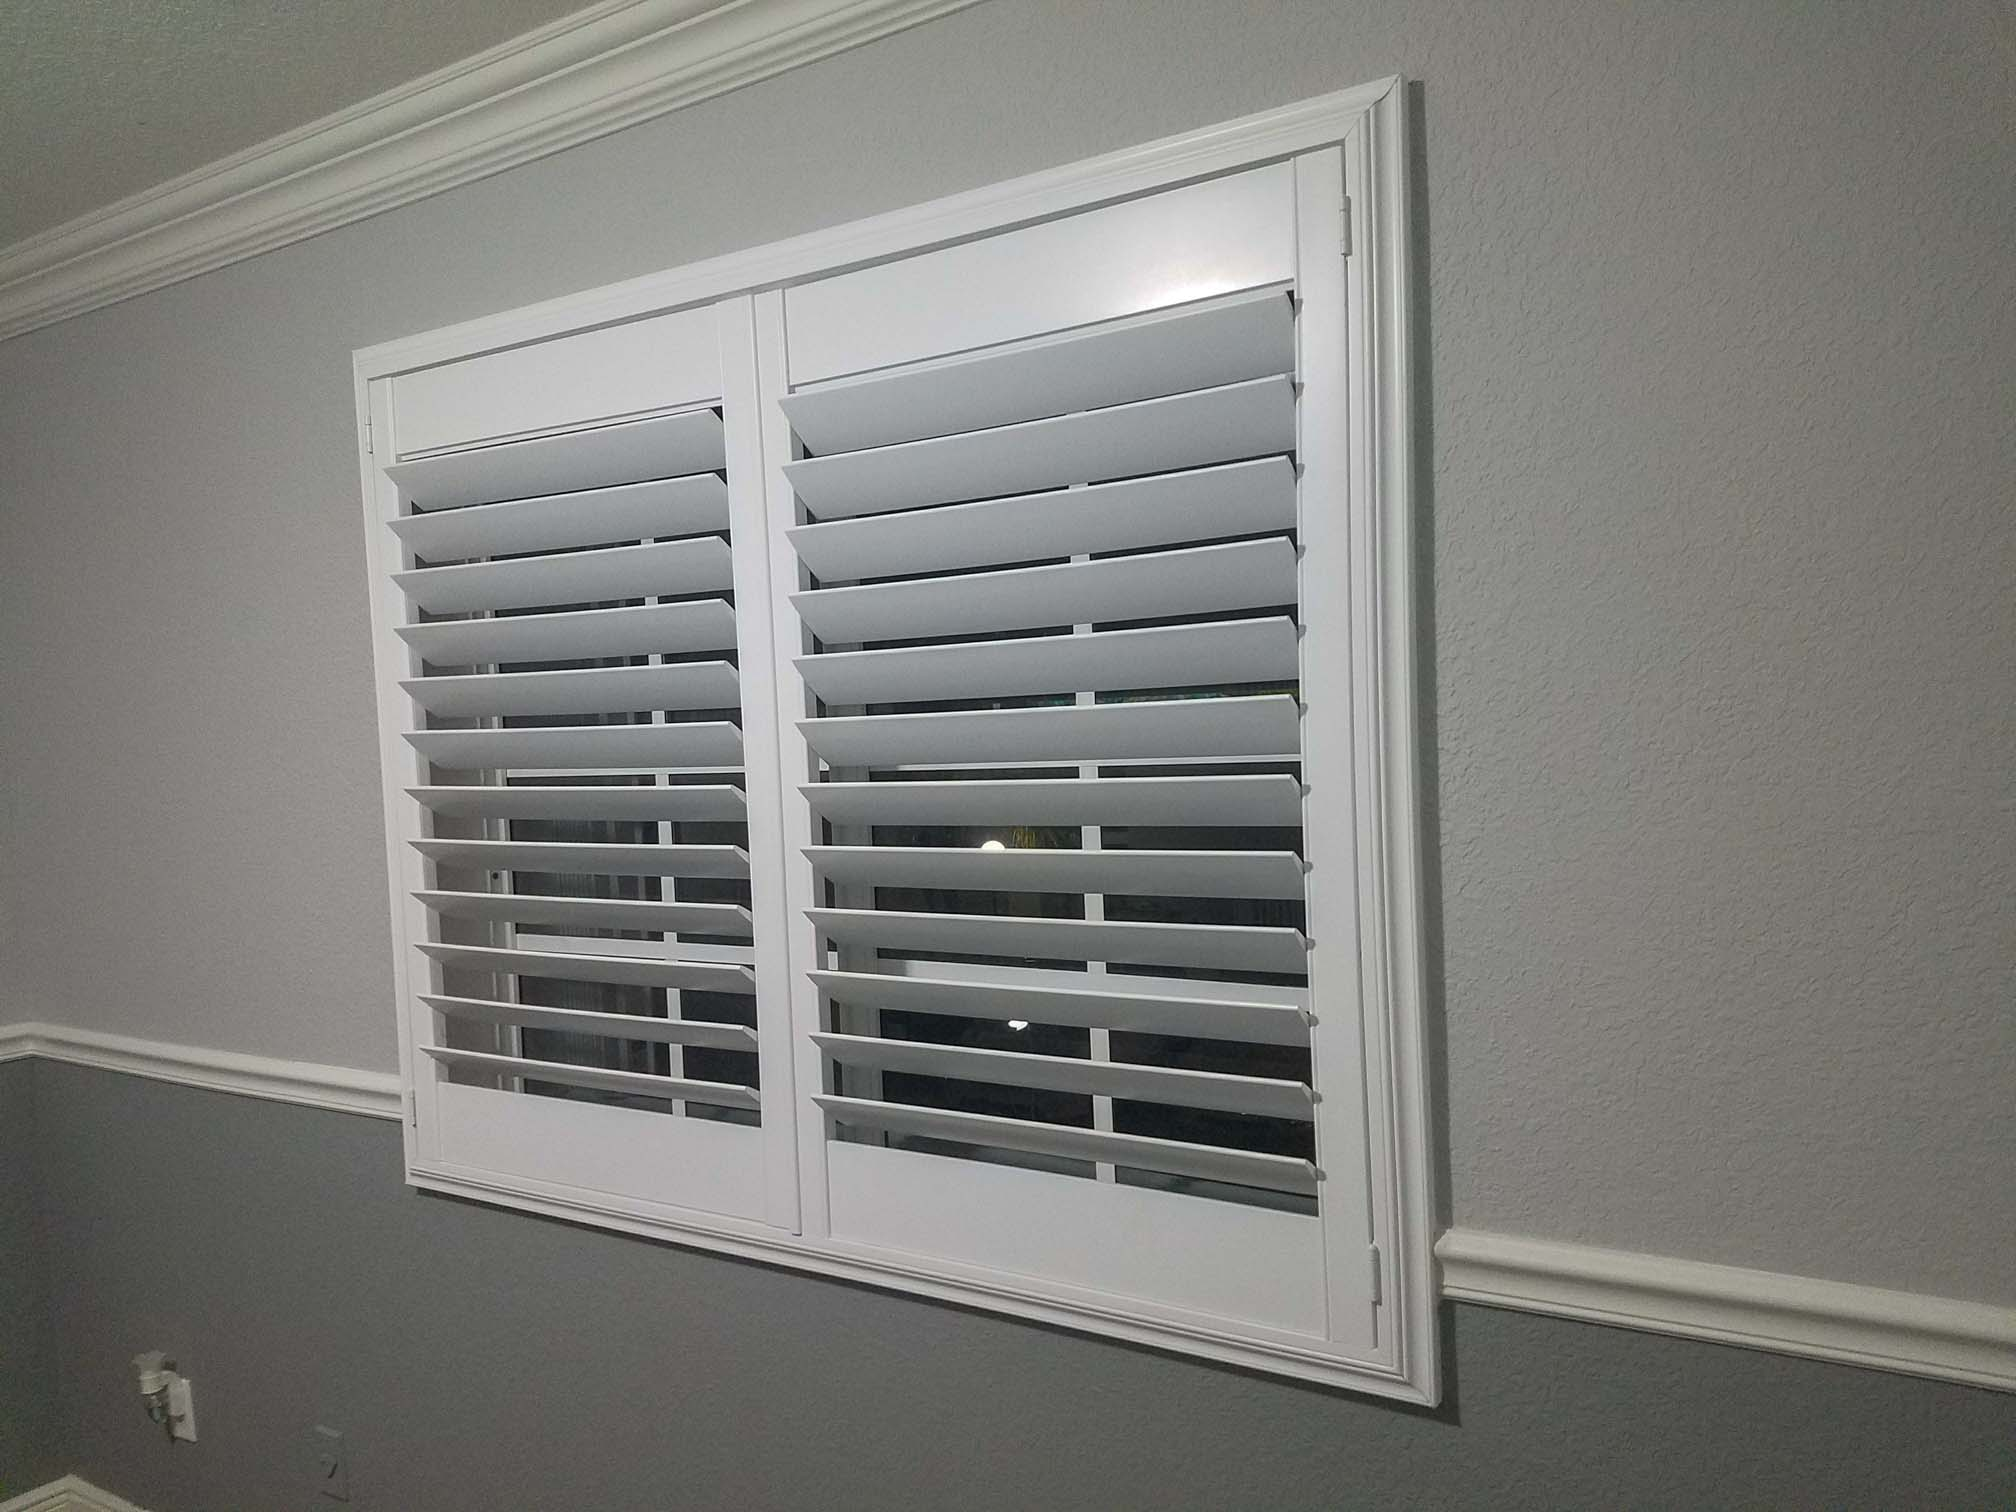 plantation shutters gallery PLANTATION SHUTTERS GALLERY 20180304 204347